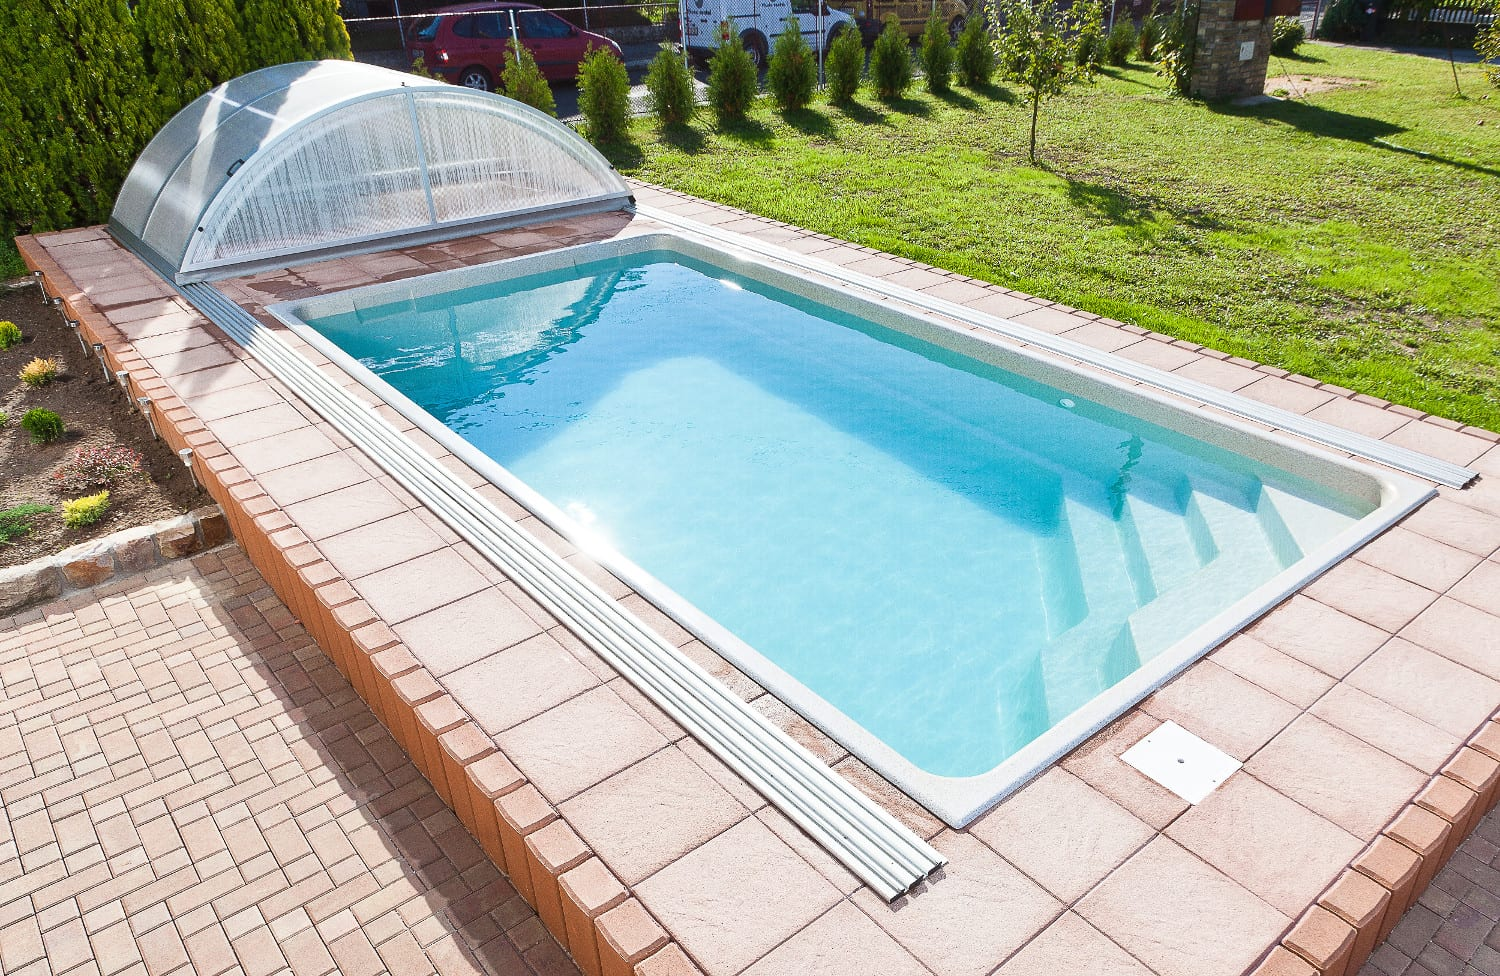 Ametyst compact one-piece swimming pool